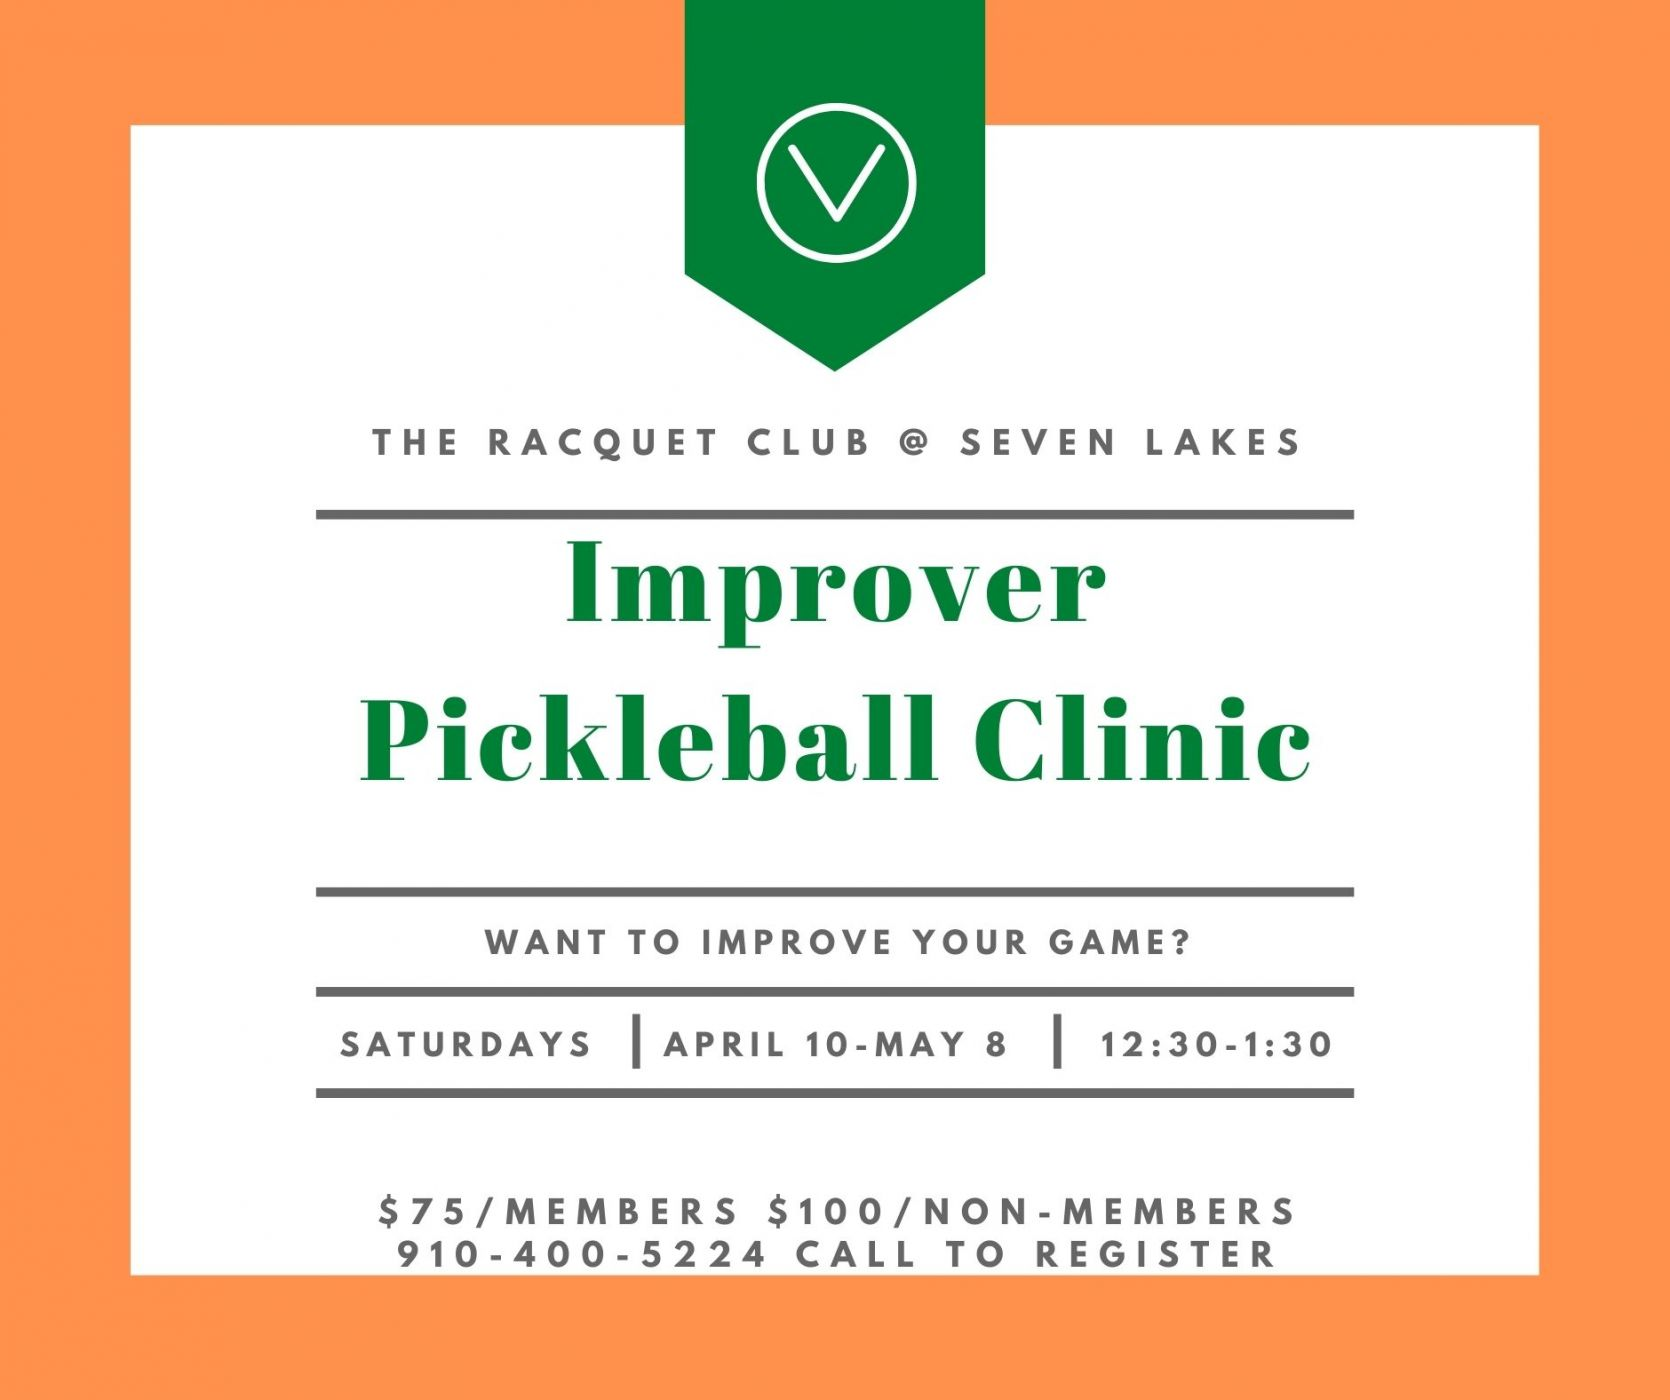 Imporever Pickle Ball Clinic